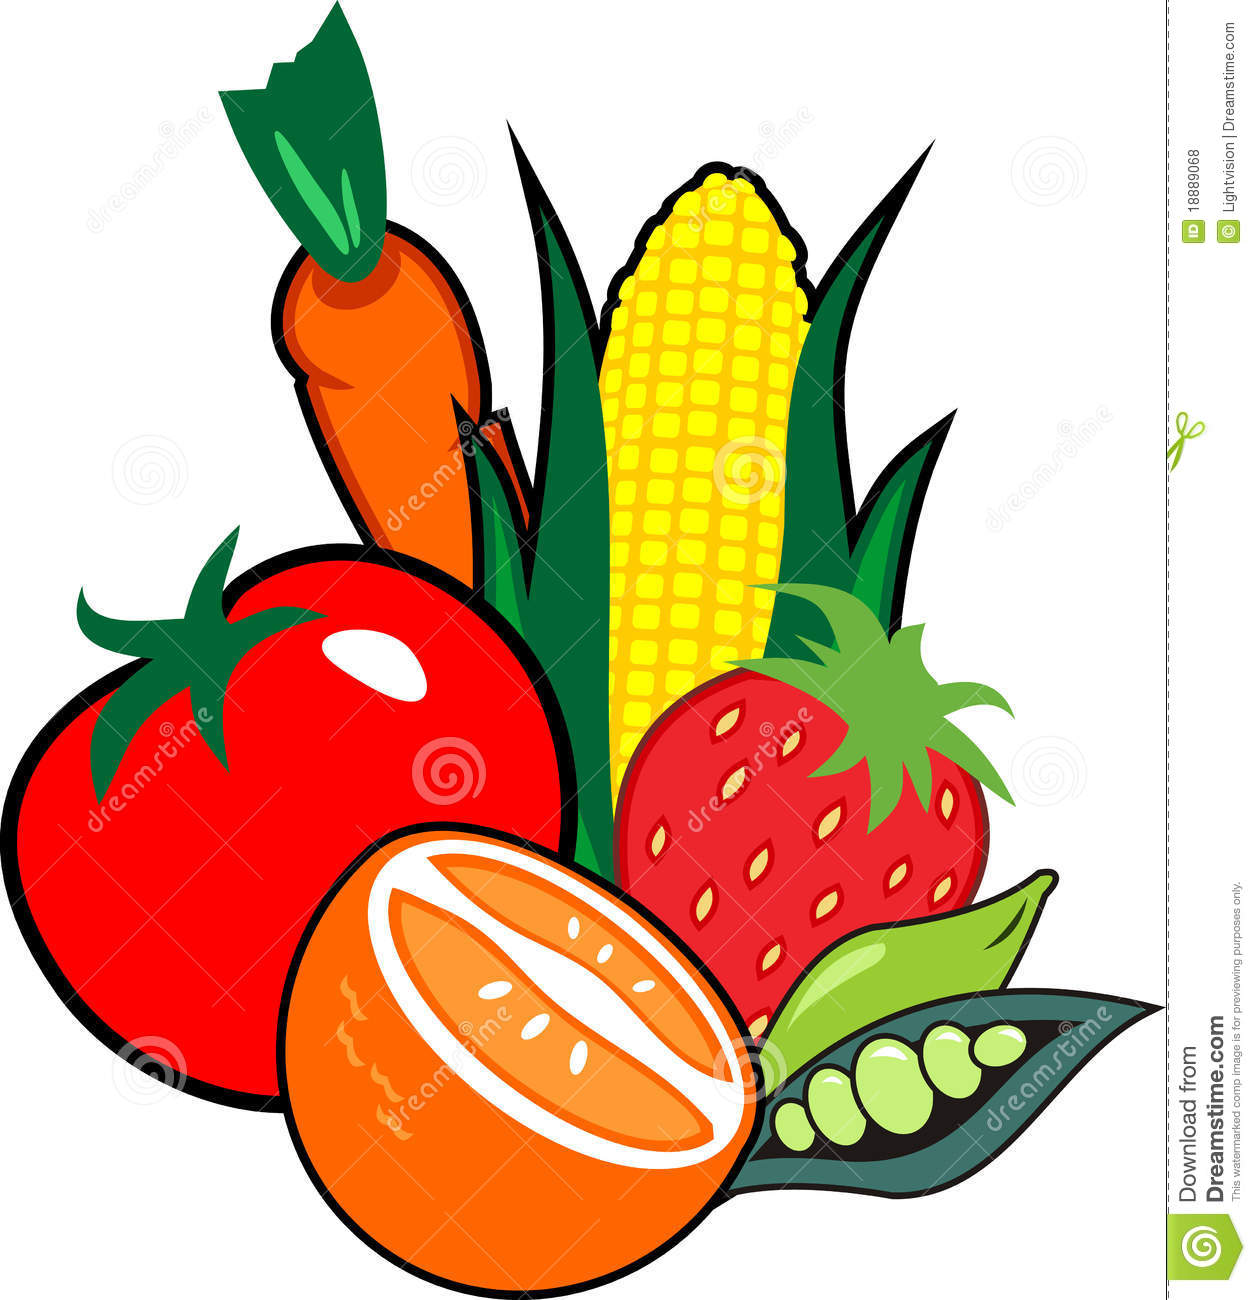 Clipart vegetables and fruits.